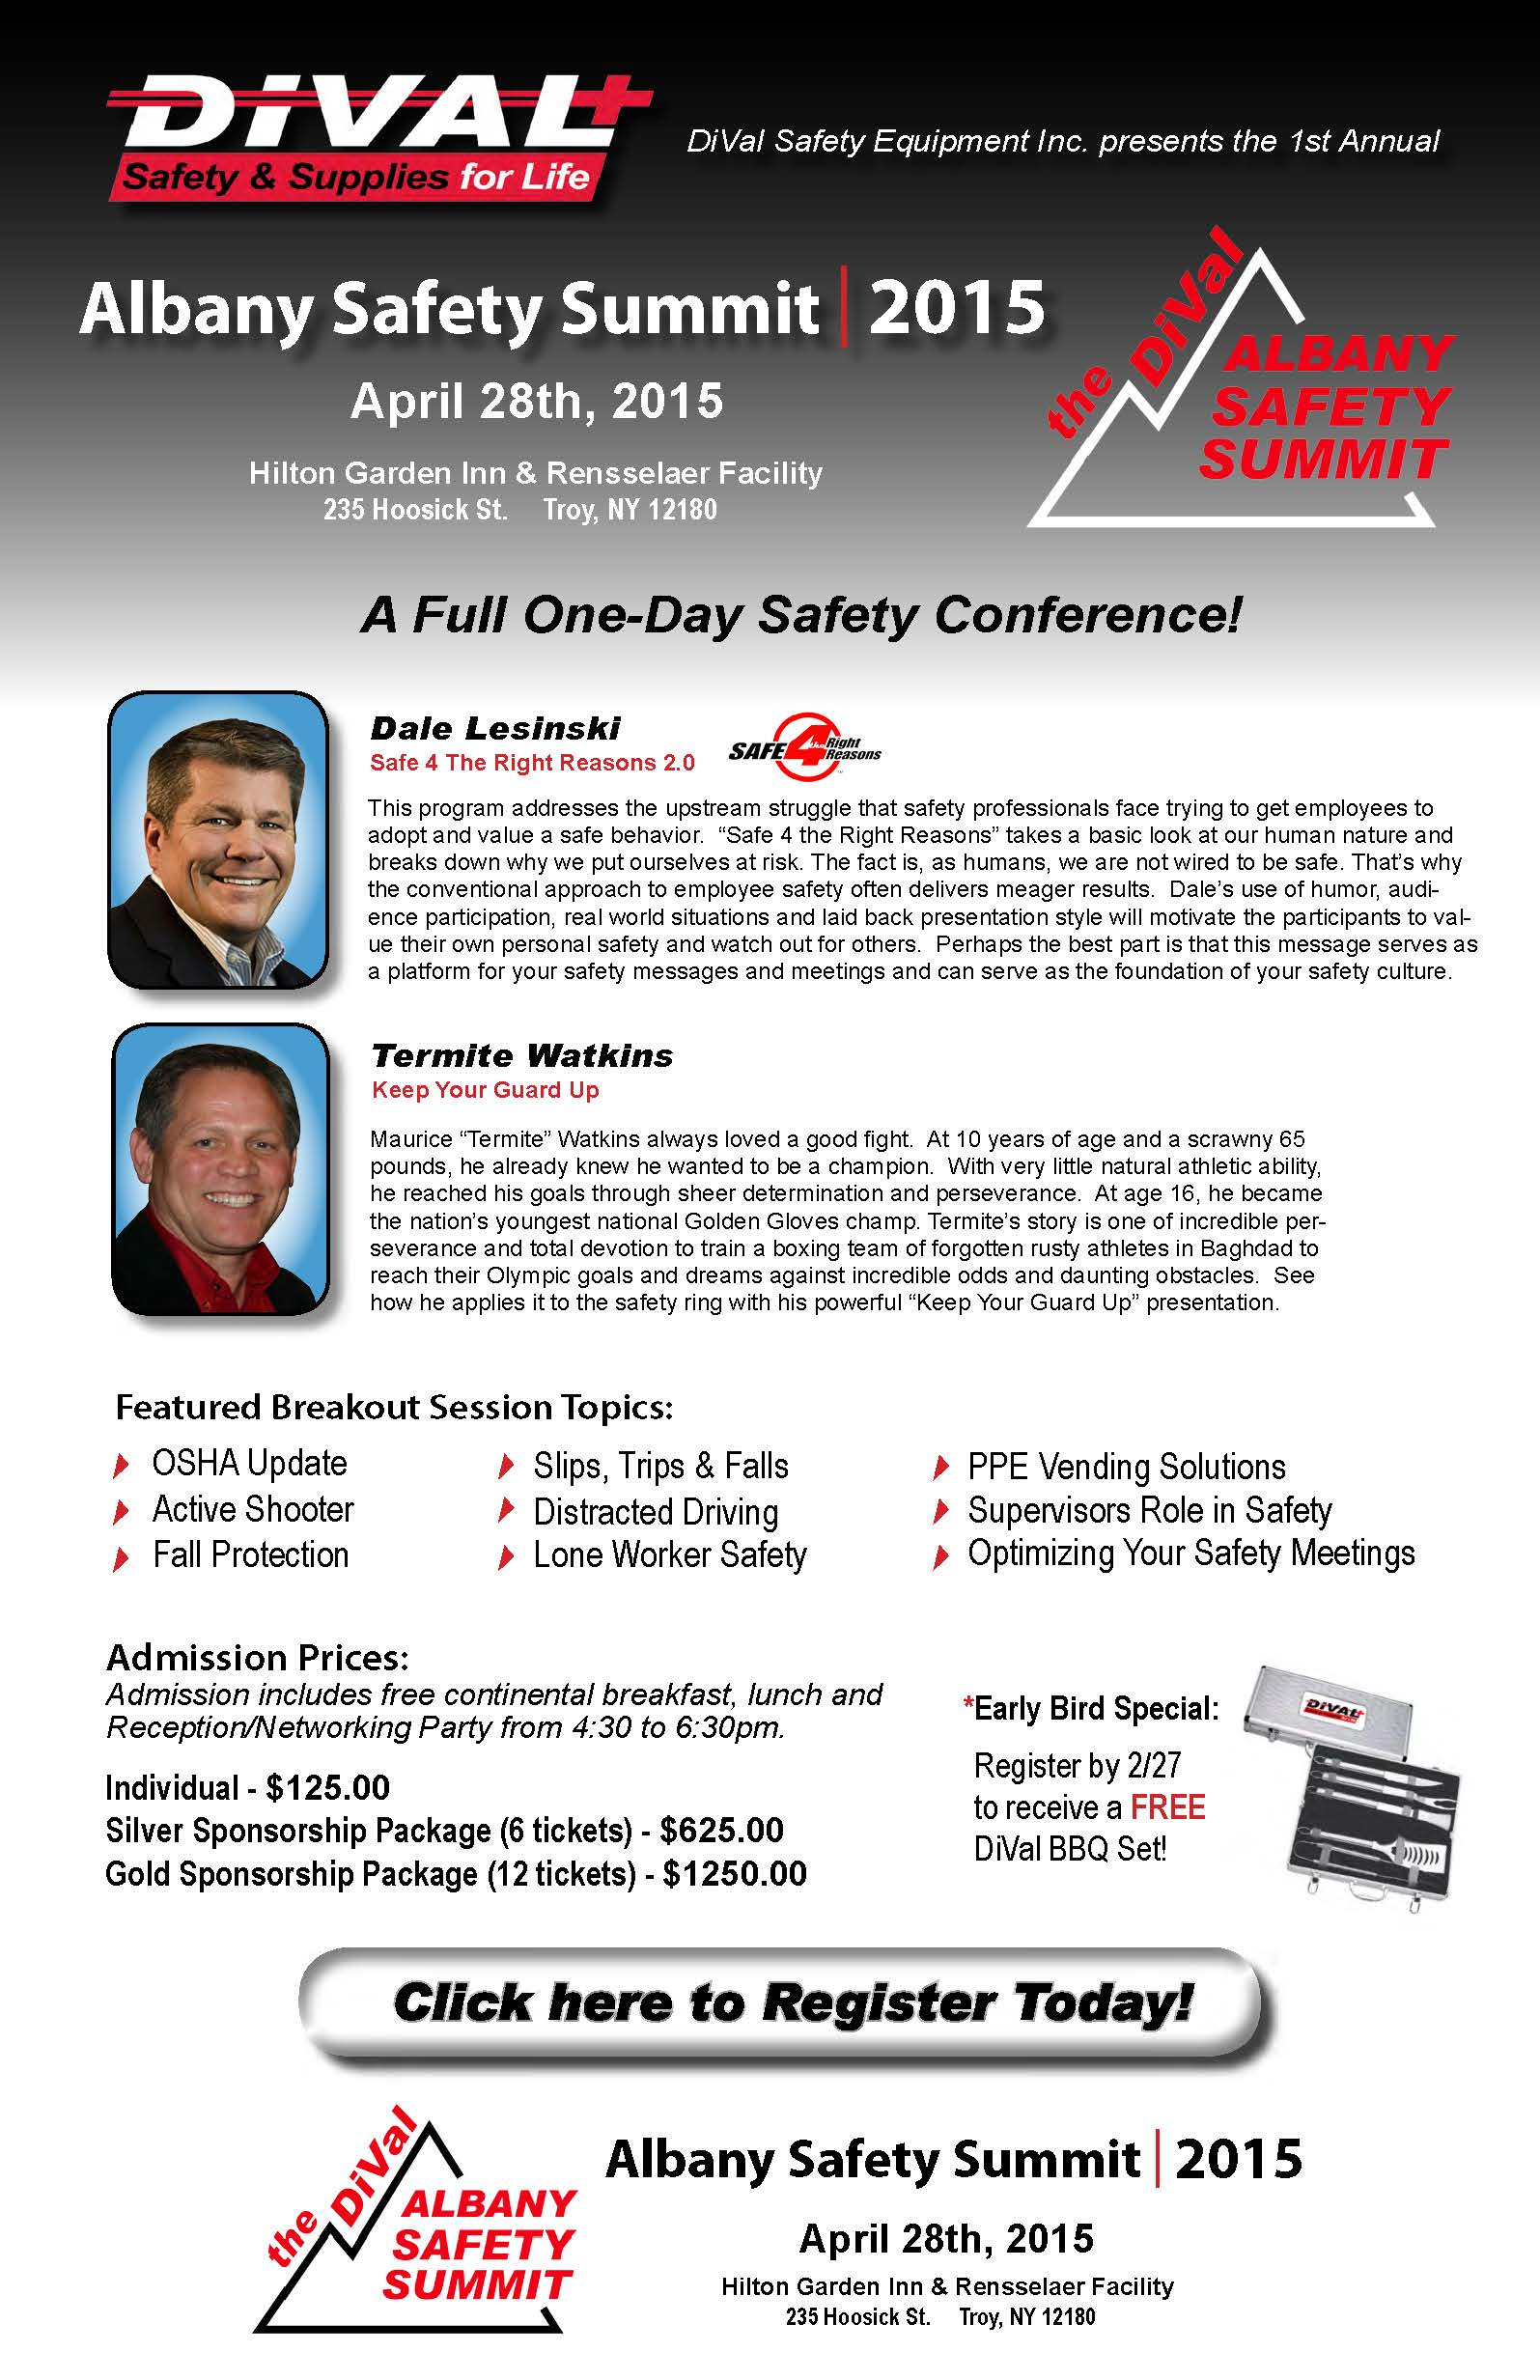 Albany Safety Summit - Web Landing Page